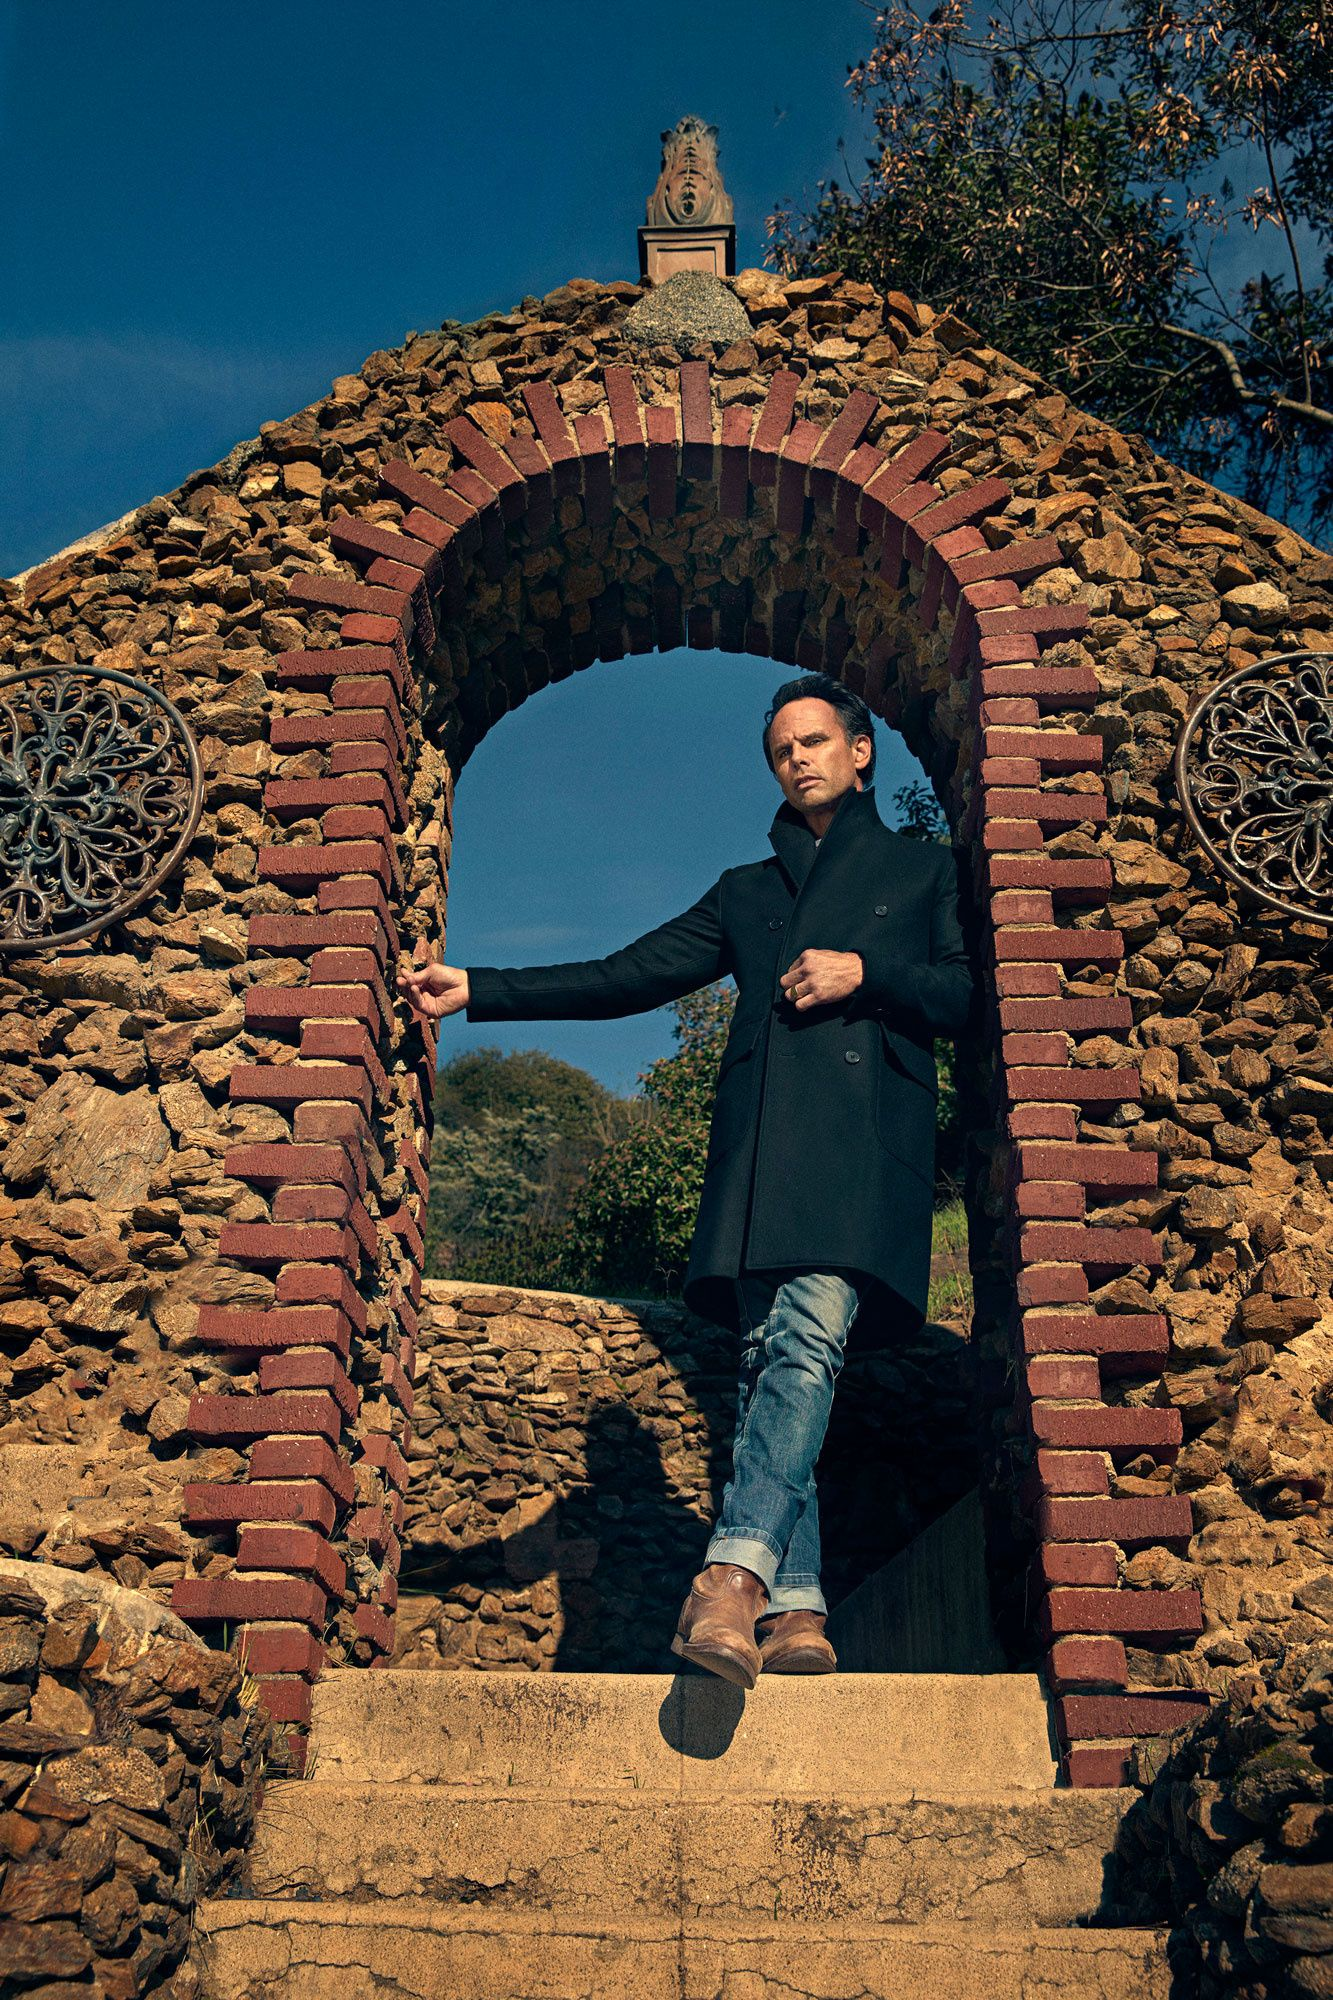 Walton Goggins standing in a stone archway.